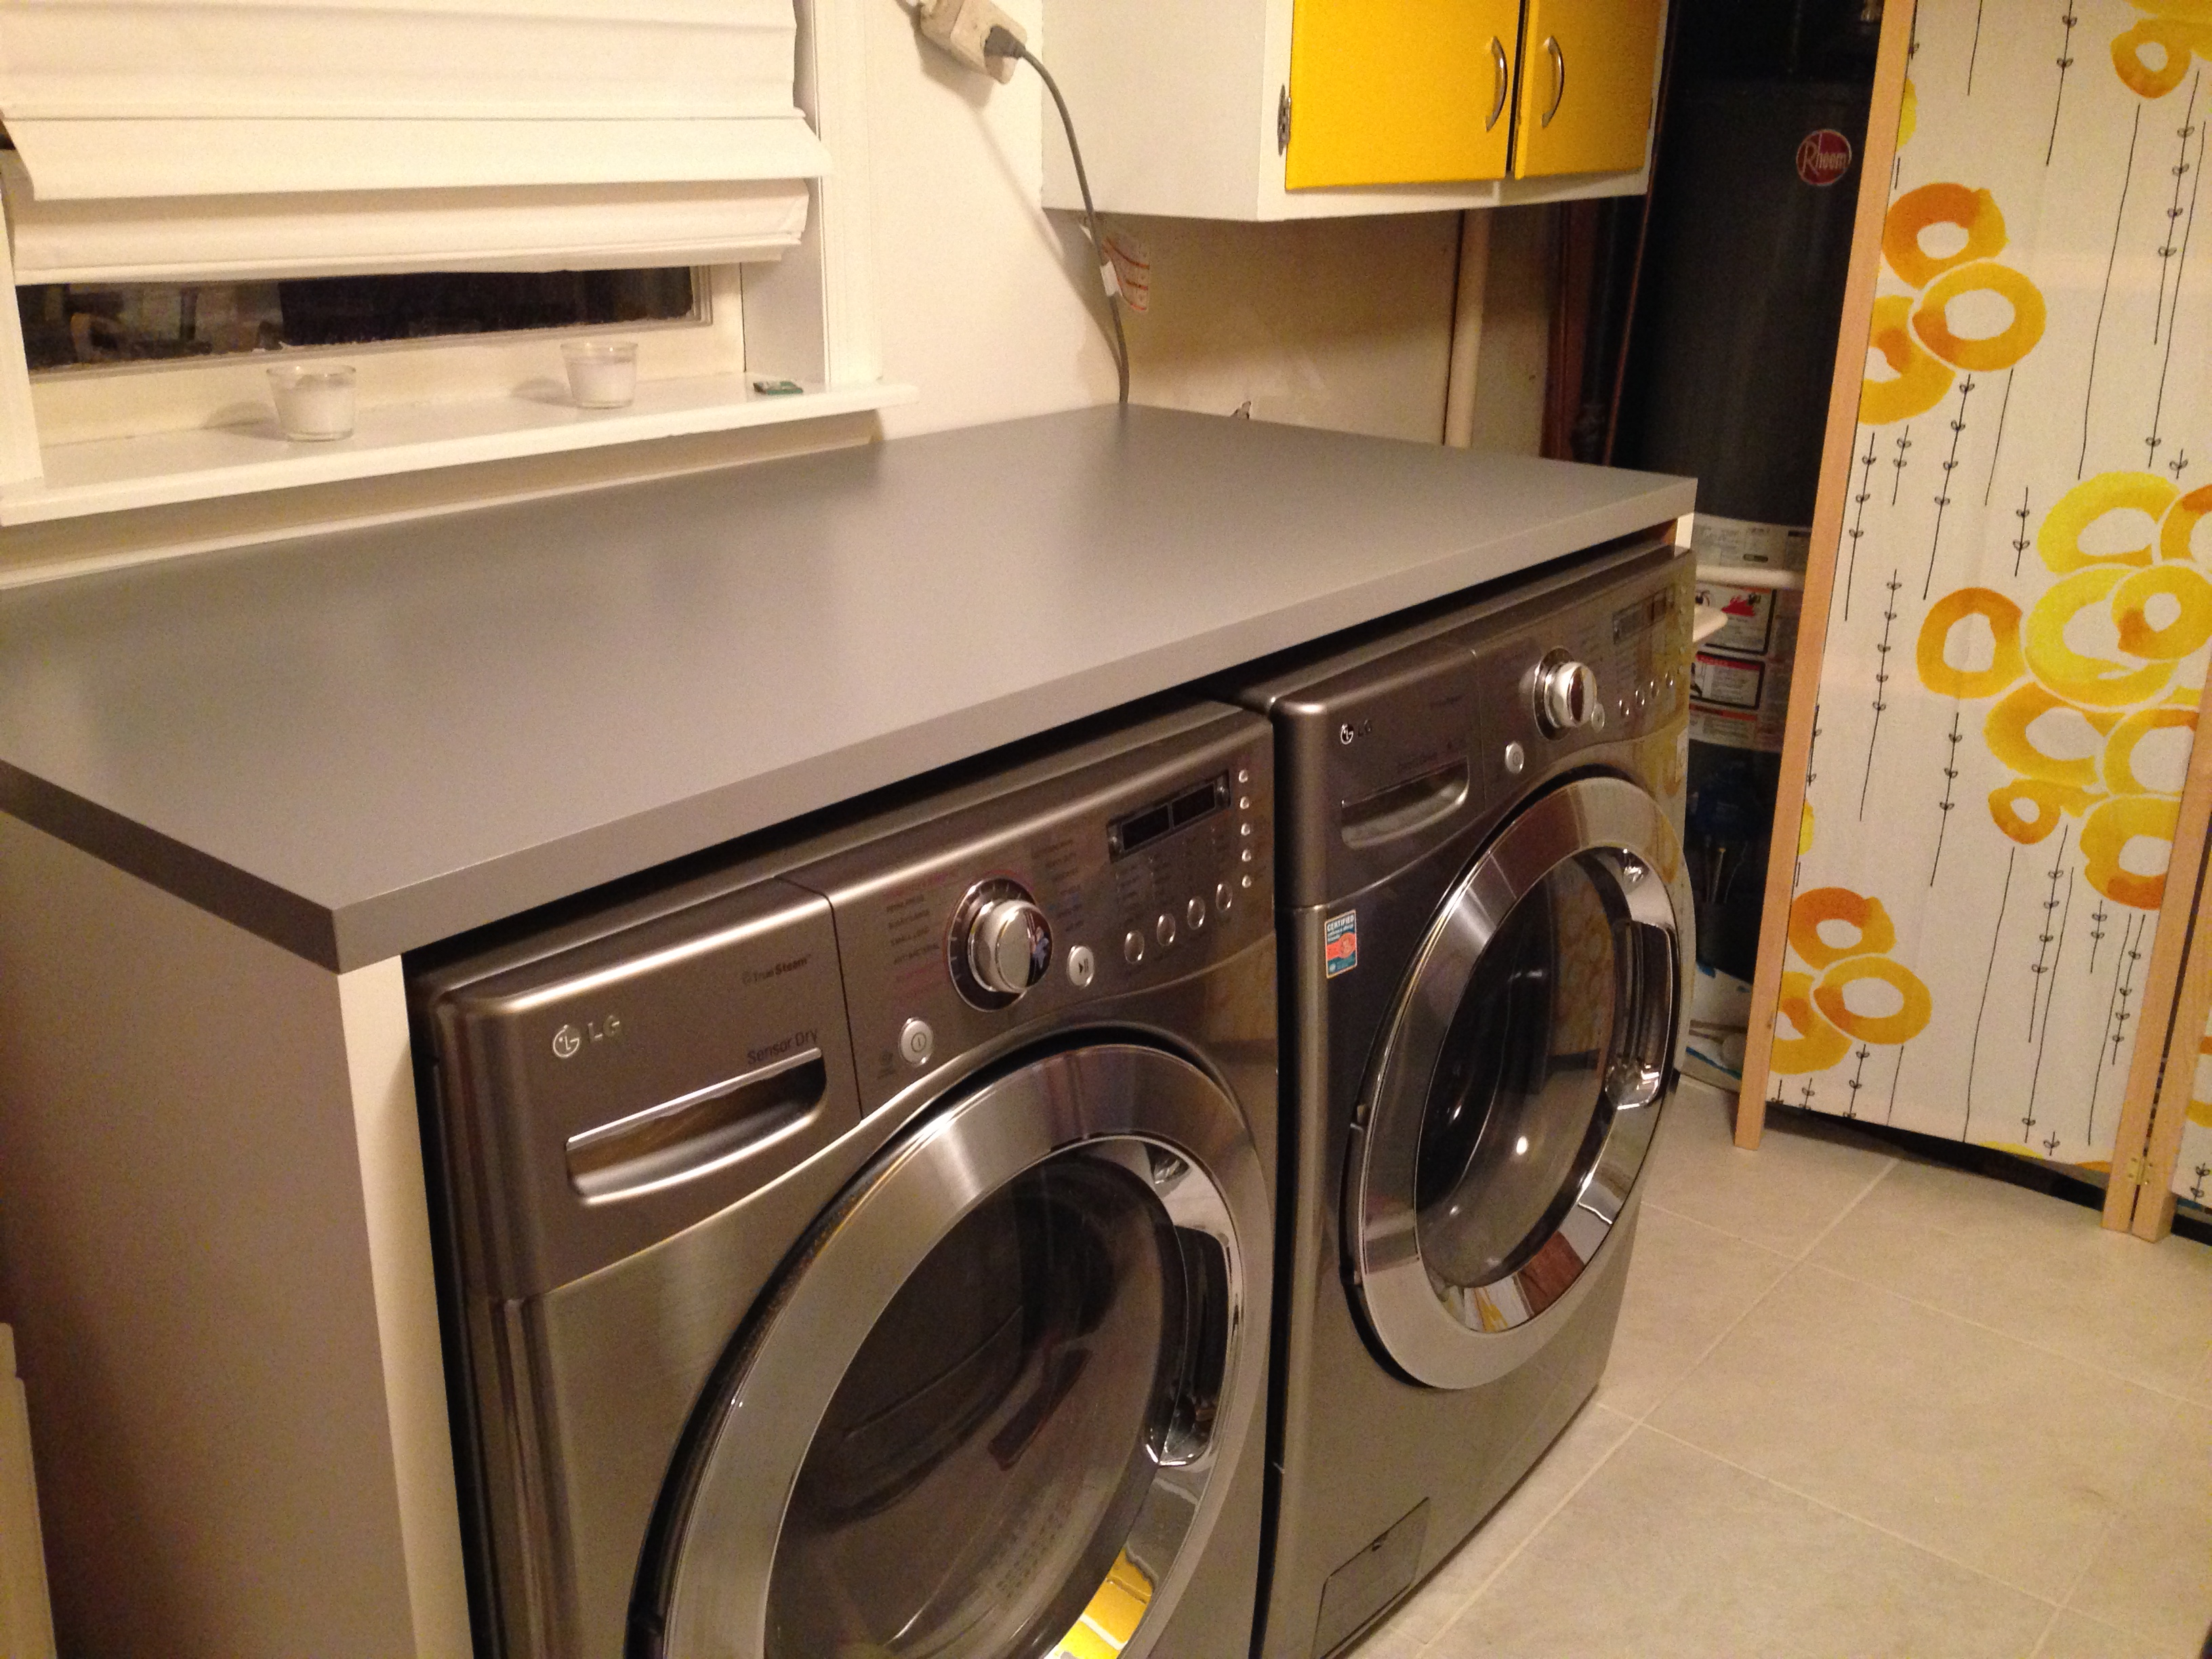 House Project: Laundry Room (and Table!)